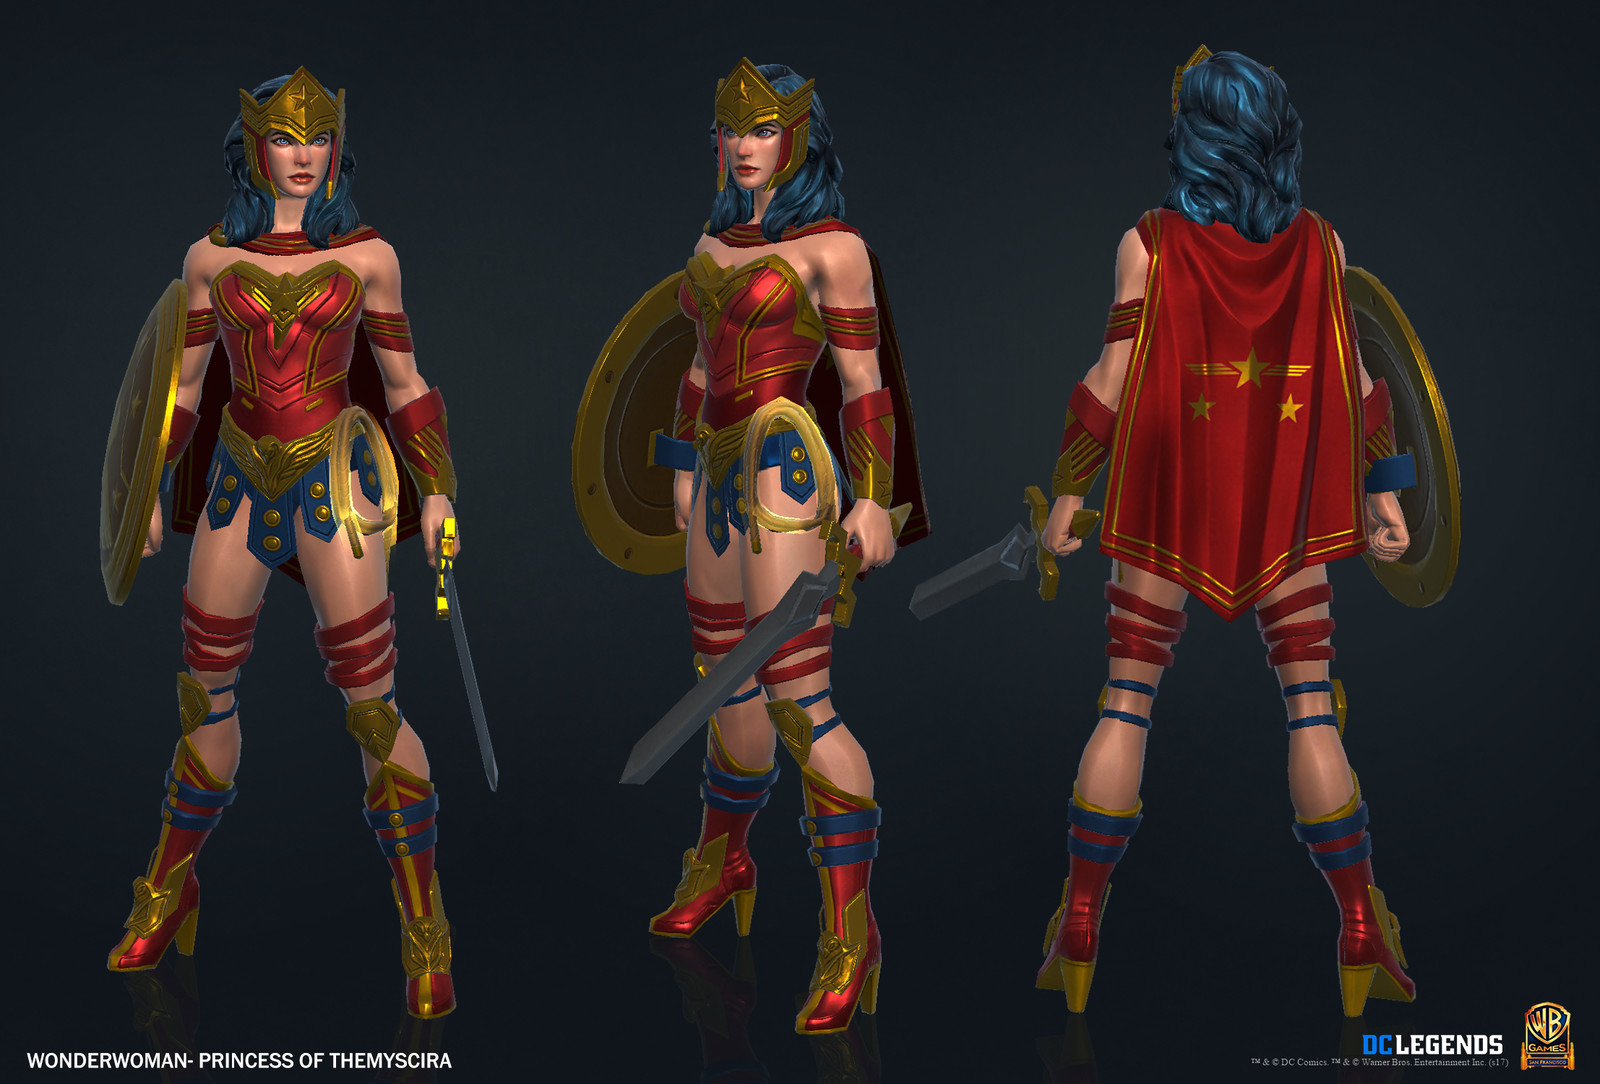 Wonder Woman Legendary.  High Poly, Low Poly Textures/Material work done by me. Sword created by Rachelle Danielle.